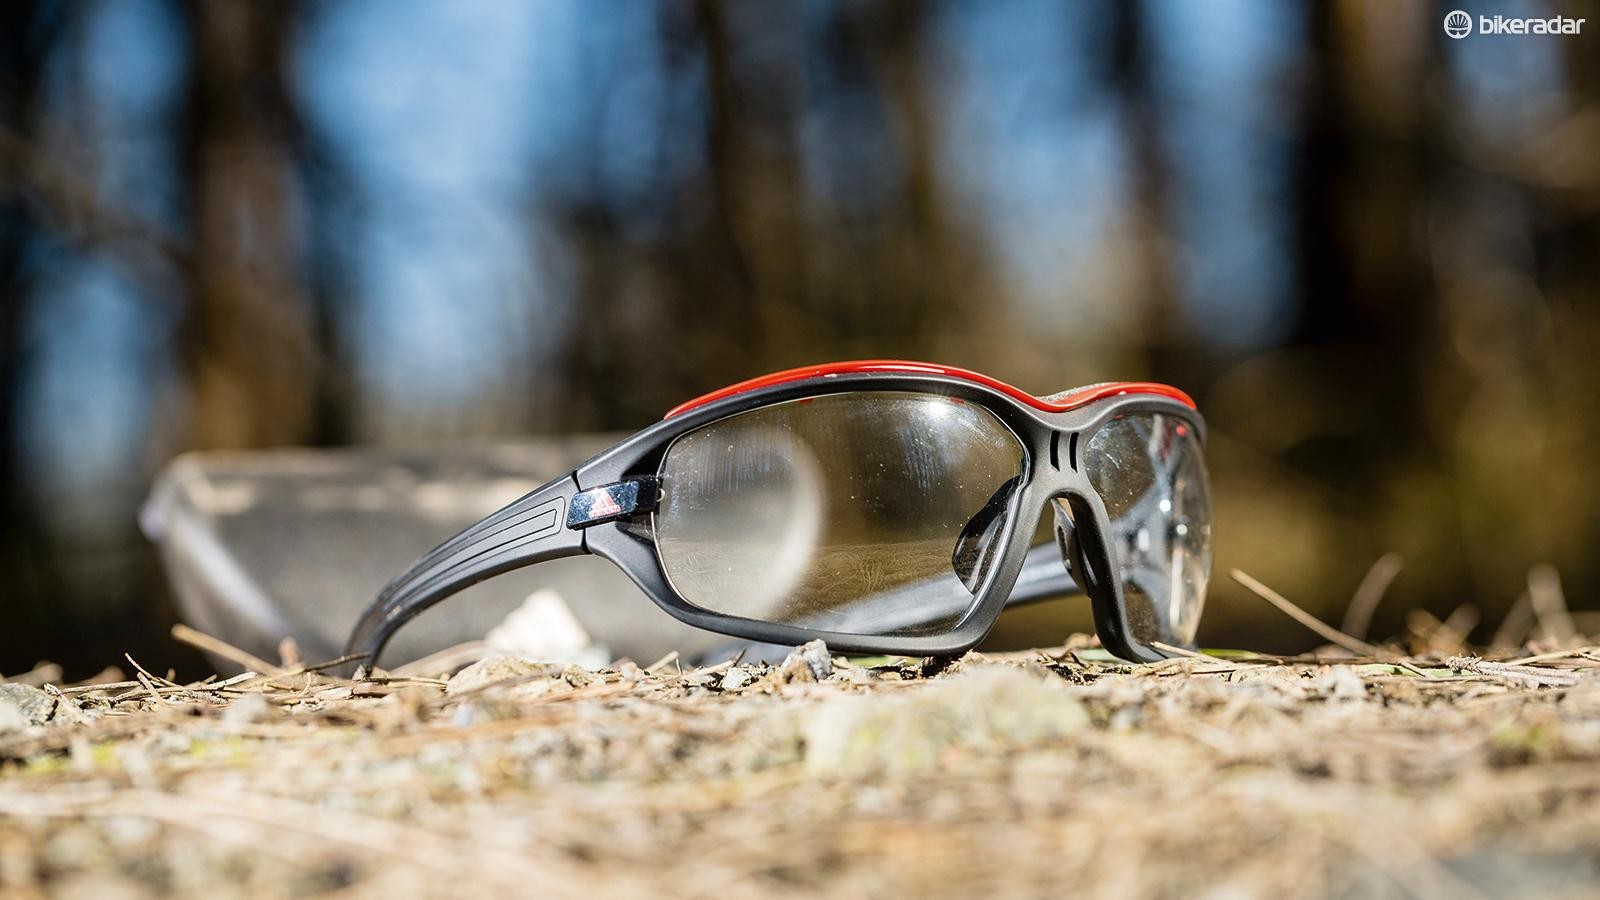 Adidas's Evil Eye Evo Pros offer a strong field of vision through big lenses